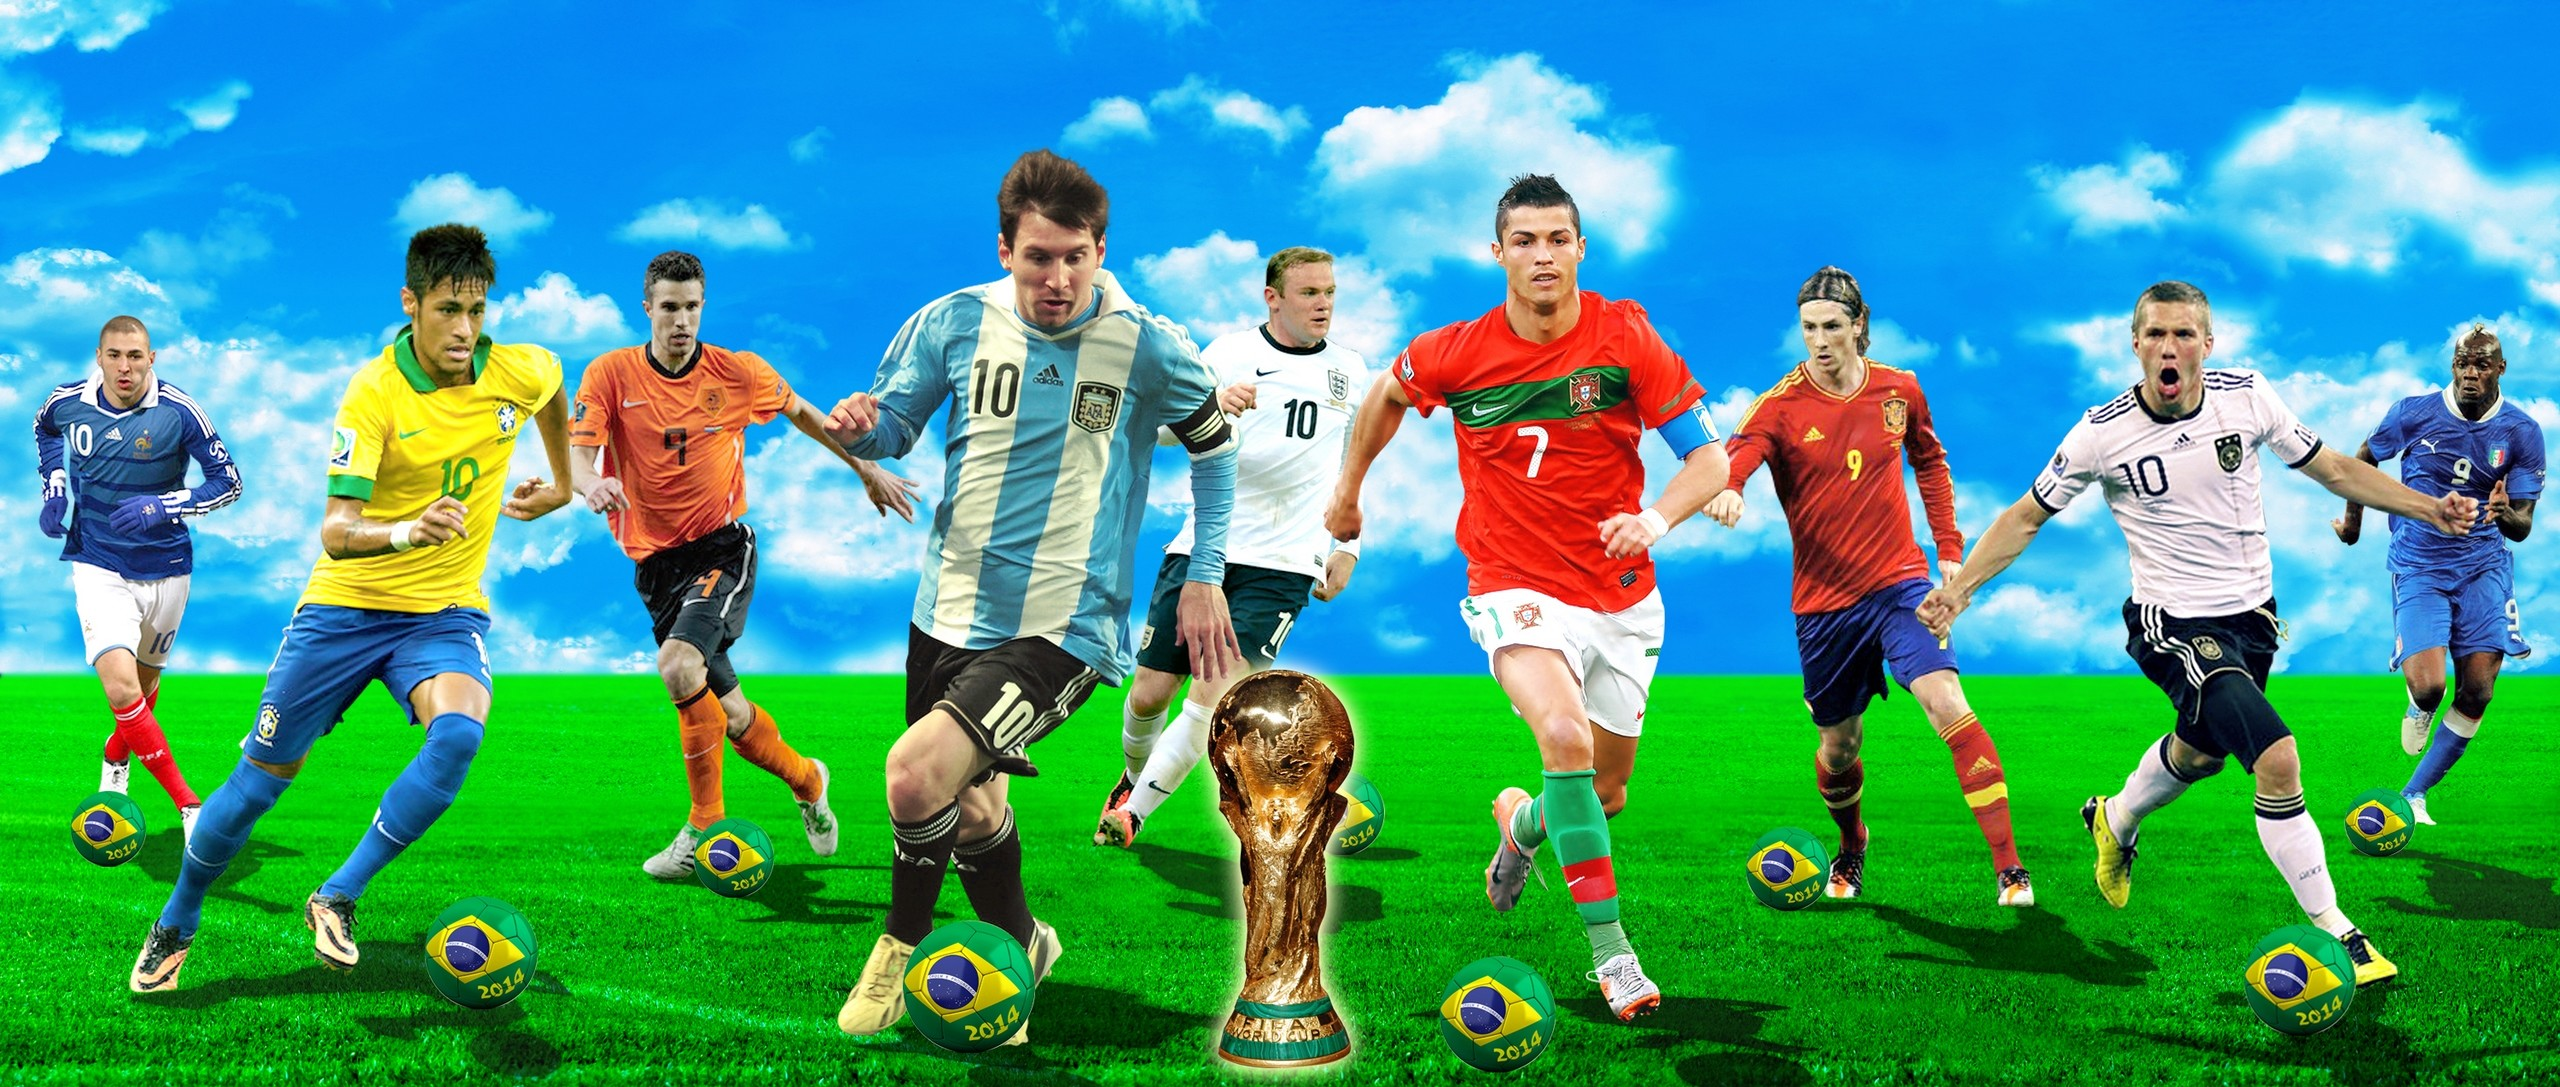 soccer players wallpapers 77 images